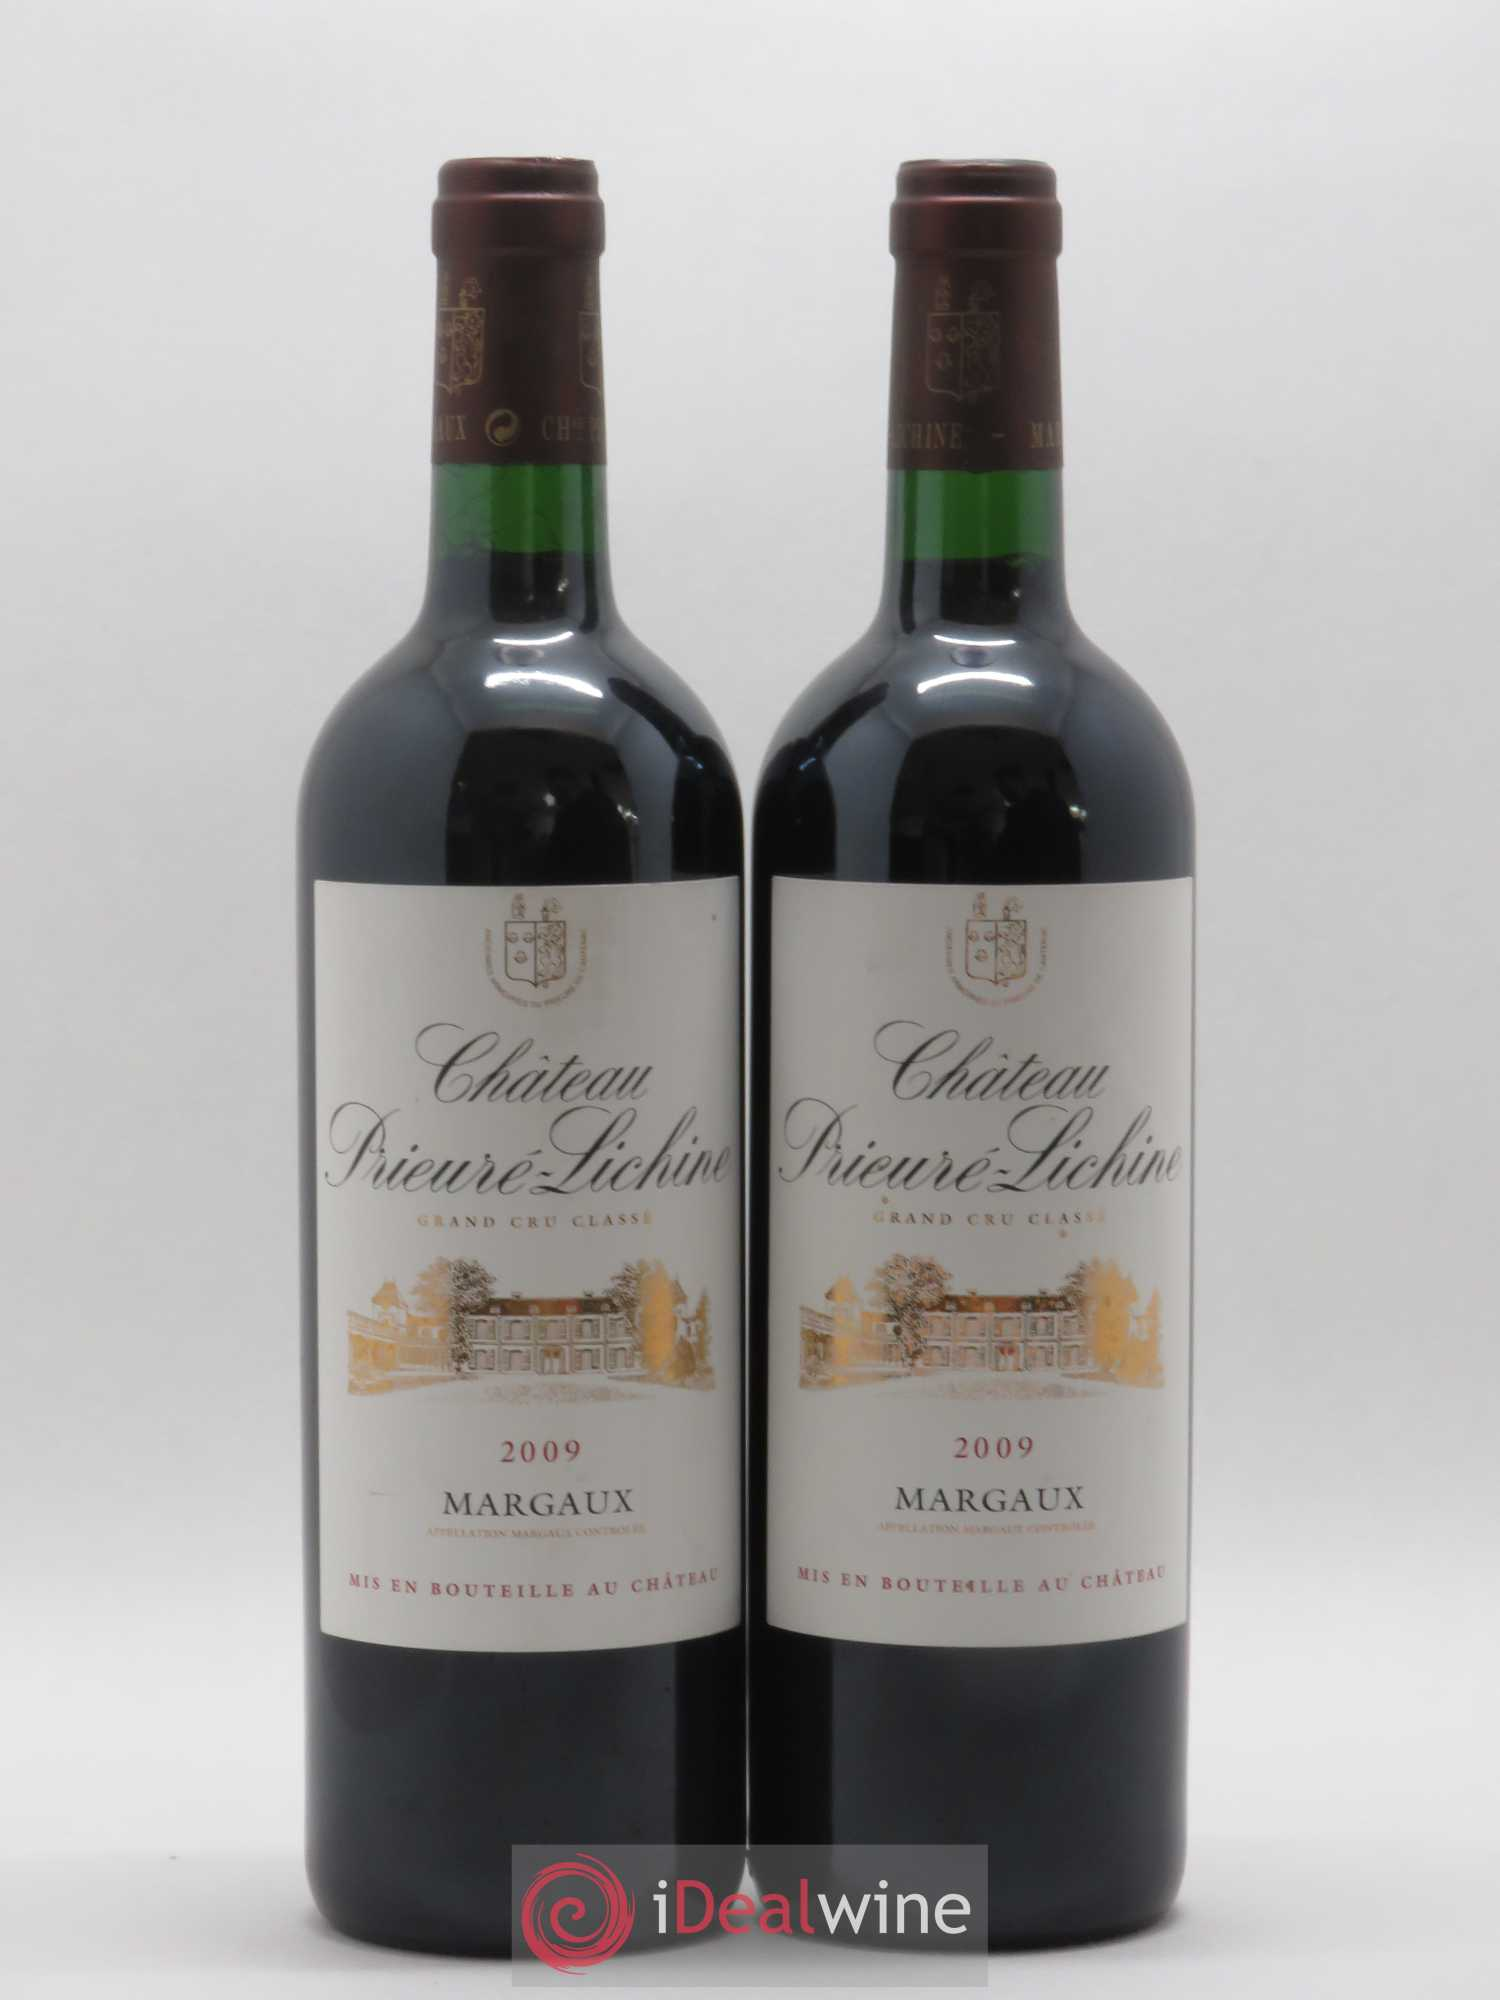 Château Prieuré Lichine 4ème Grand Cru Classé  2009 - Lot of 2 Bottles